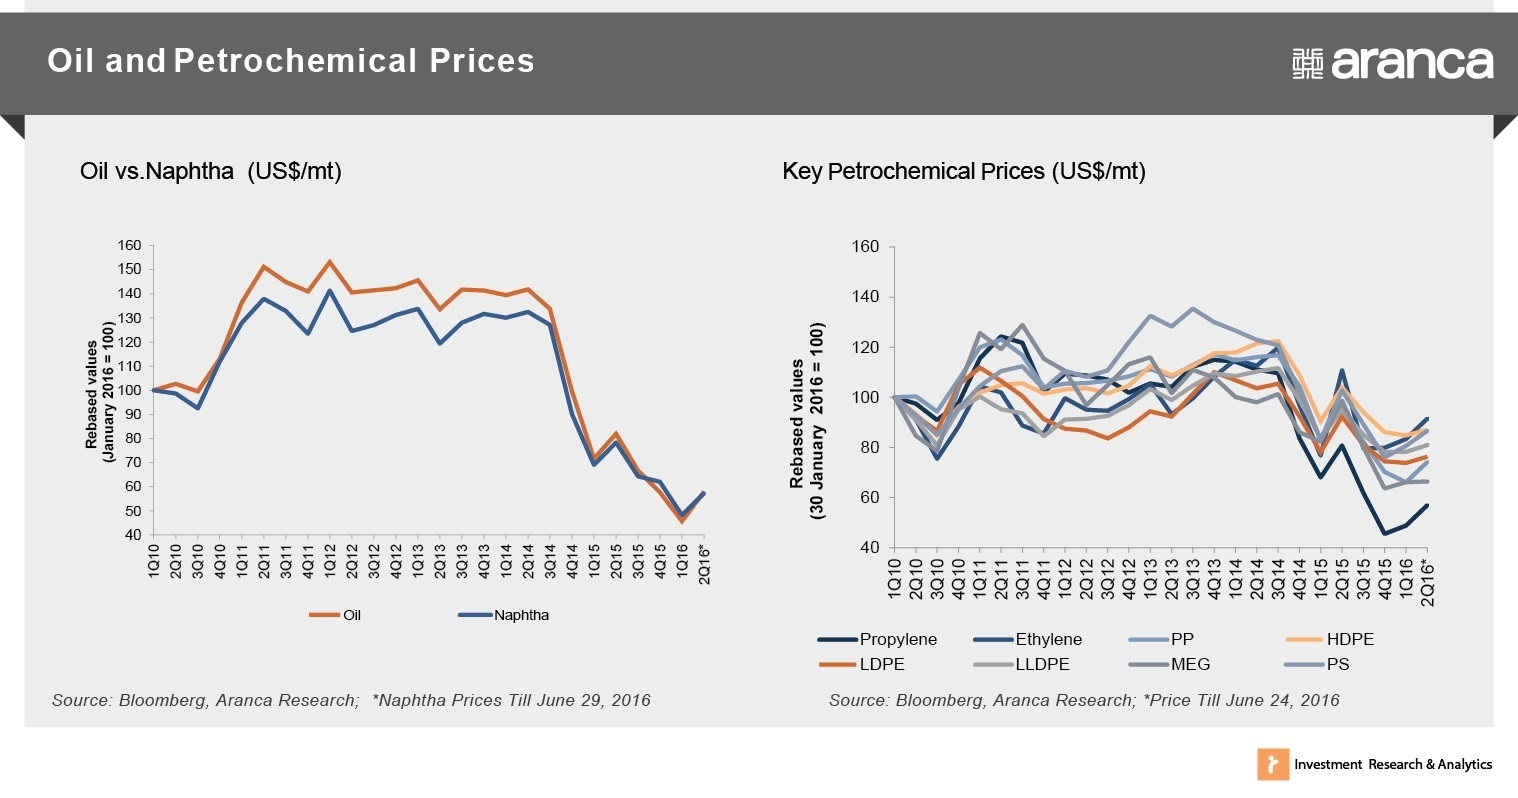 Oil & Petrochemical Prices